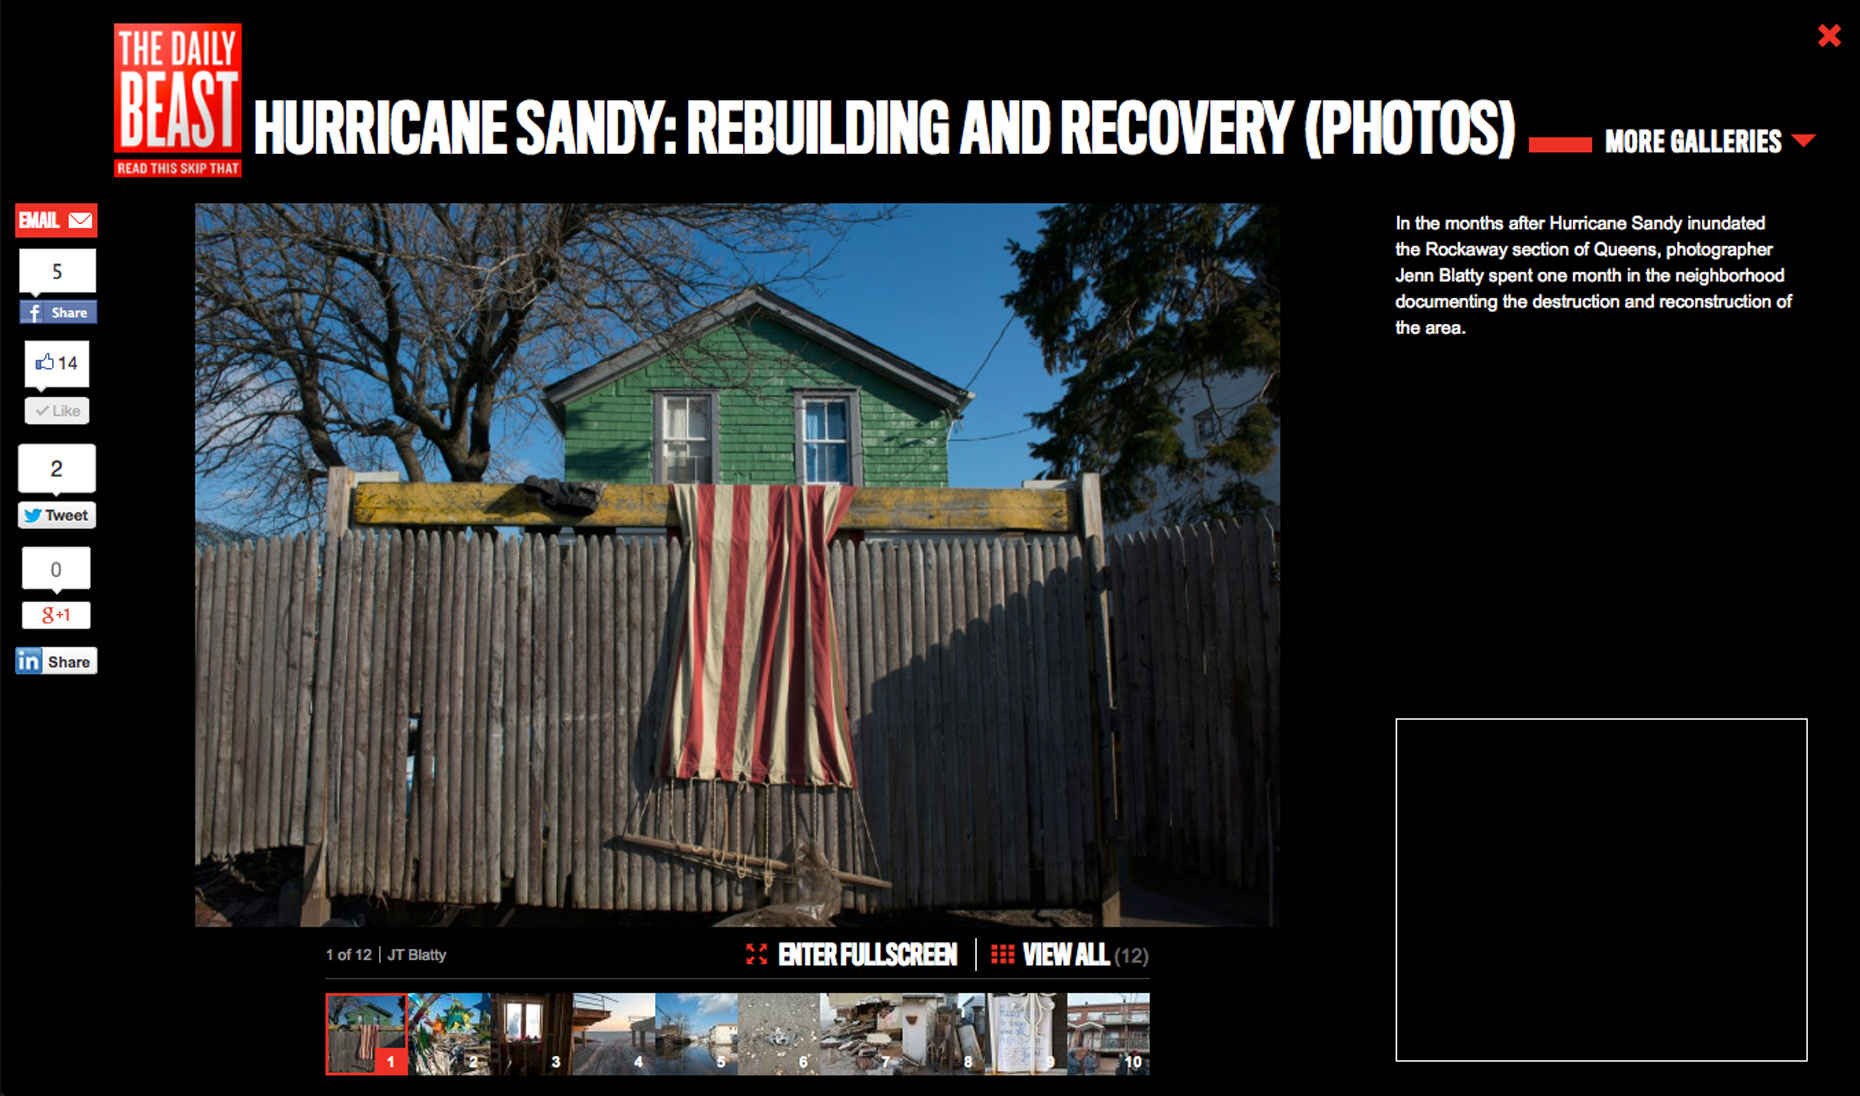 Newsweek/the Daily Beast Sandy Recovery